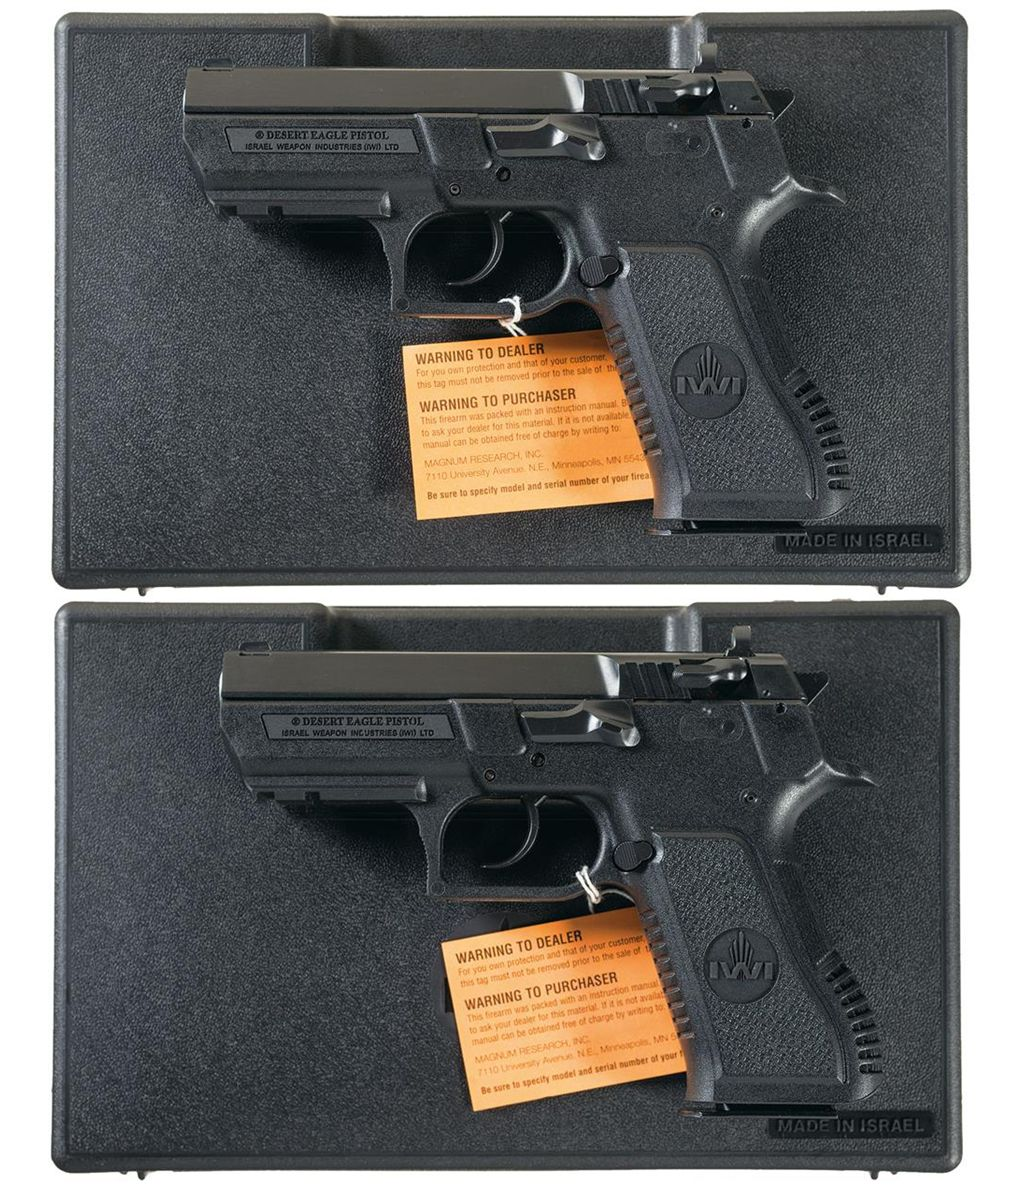 Two Magnum Desert Eagle Semi-Automatic Pistols with Cases -A) Research  Desert Eagle Baby Eagle 40 Se